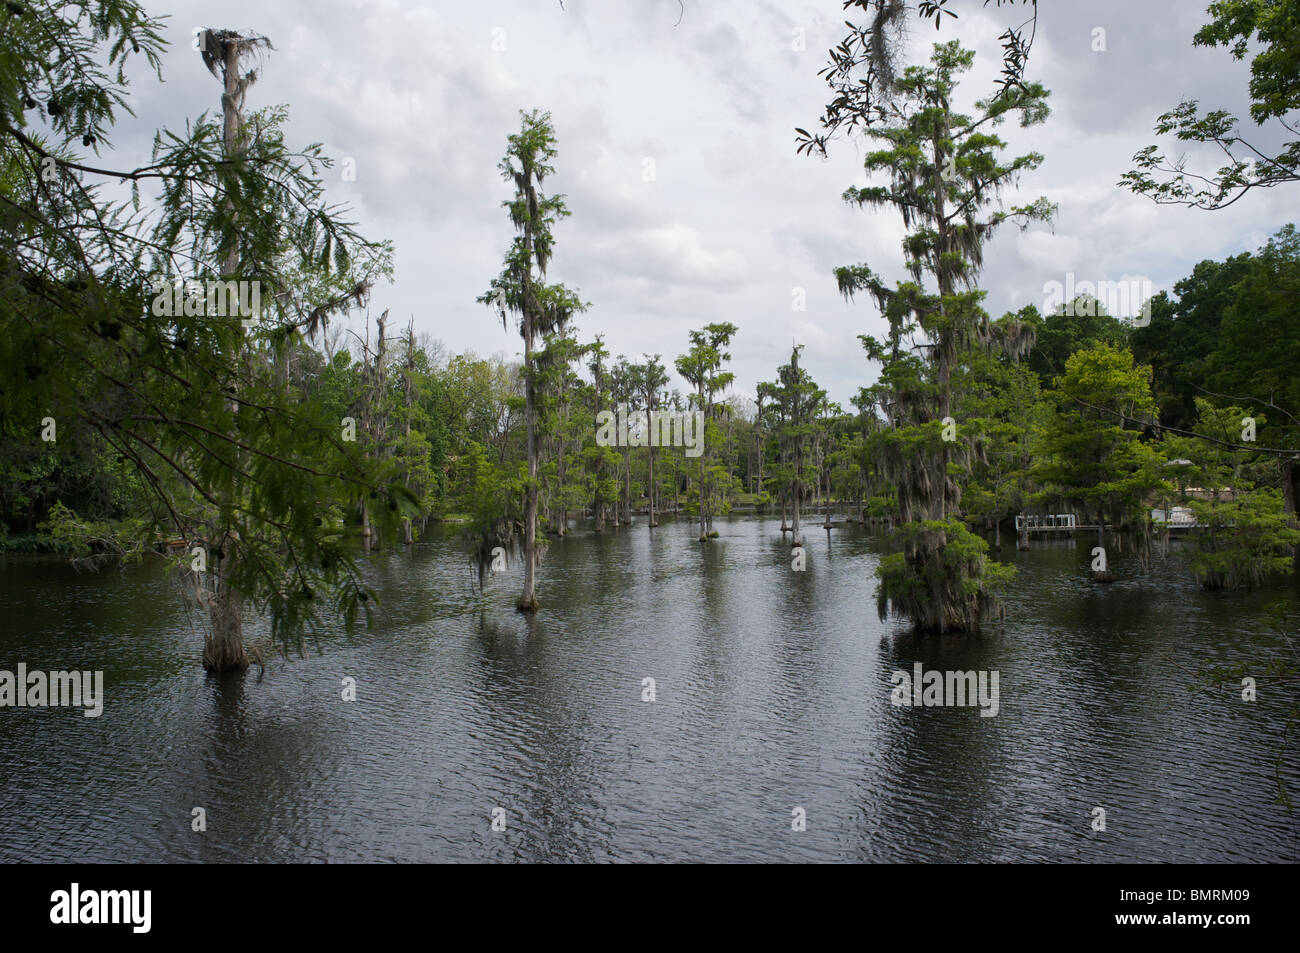 Cyprus swamp in Florida USA - Stock Image